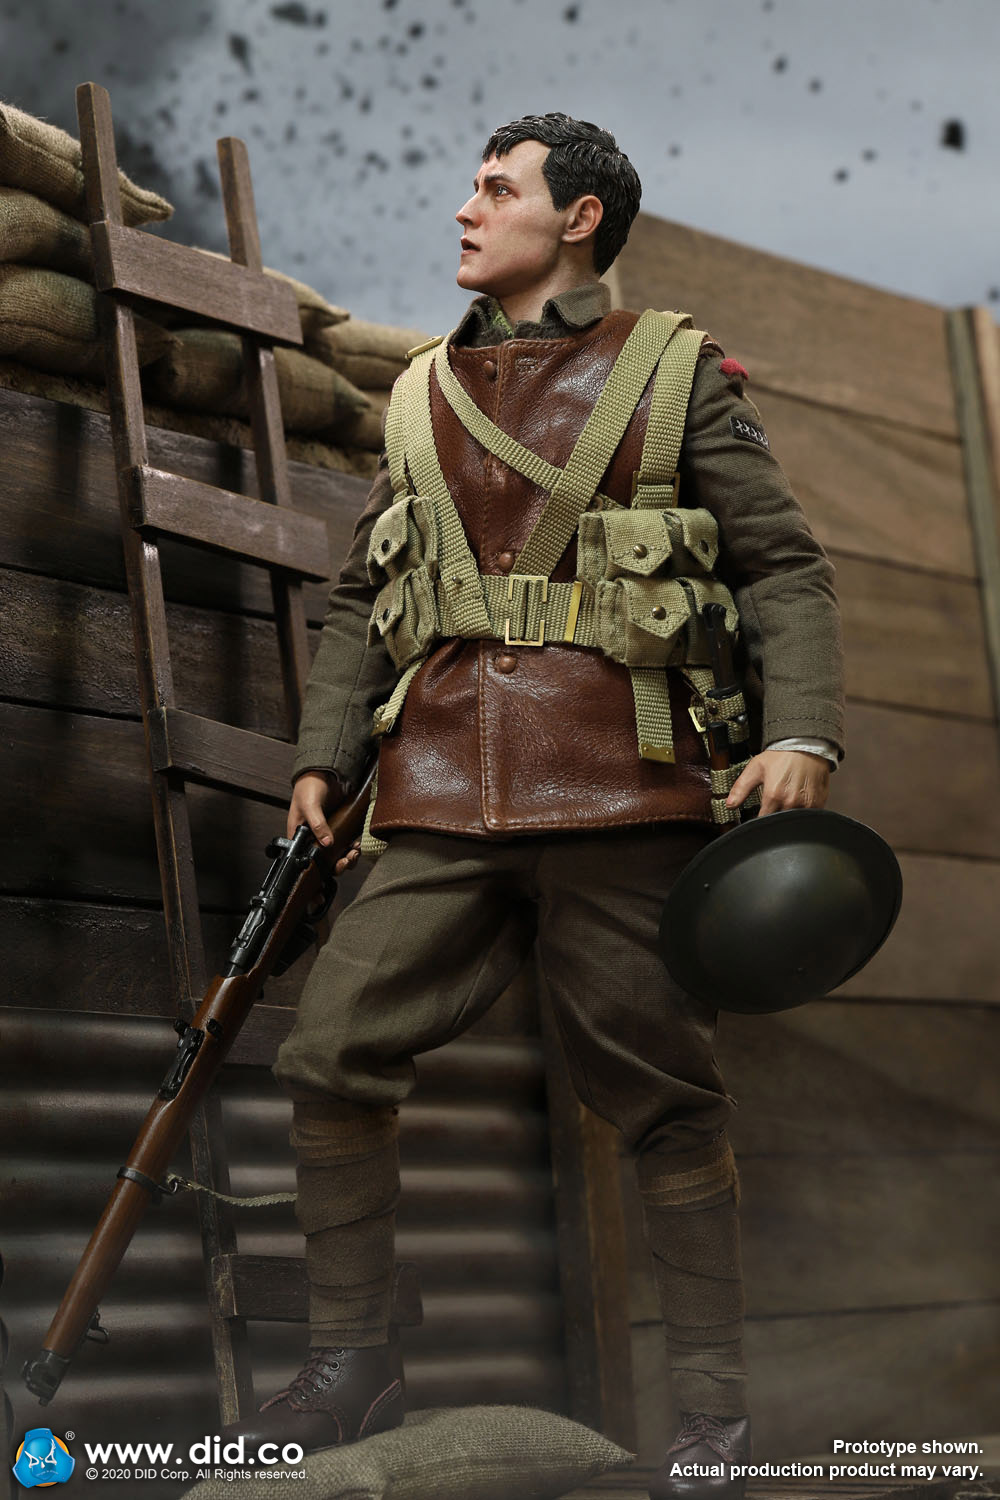 military - NEW PRODUCT: DiD: B11011 WWI British Infantry Lance Corporal William & Trench Diorama Set (UPDATED INFORMATION) 78dd6310